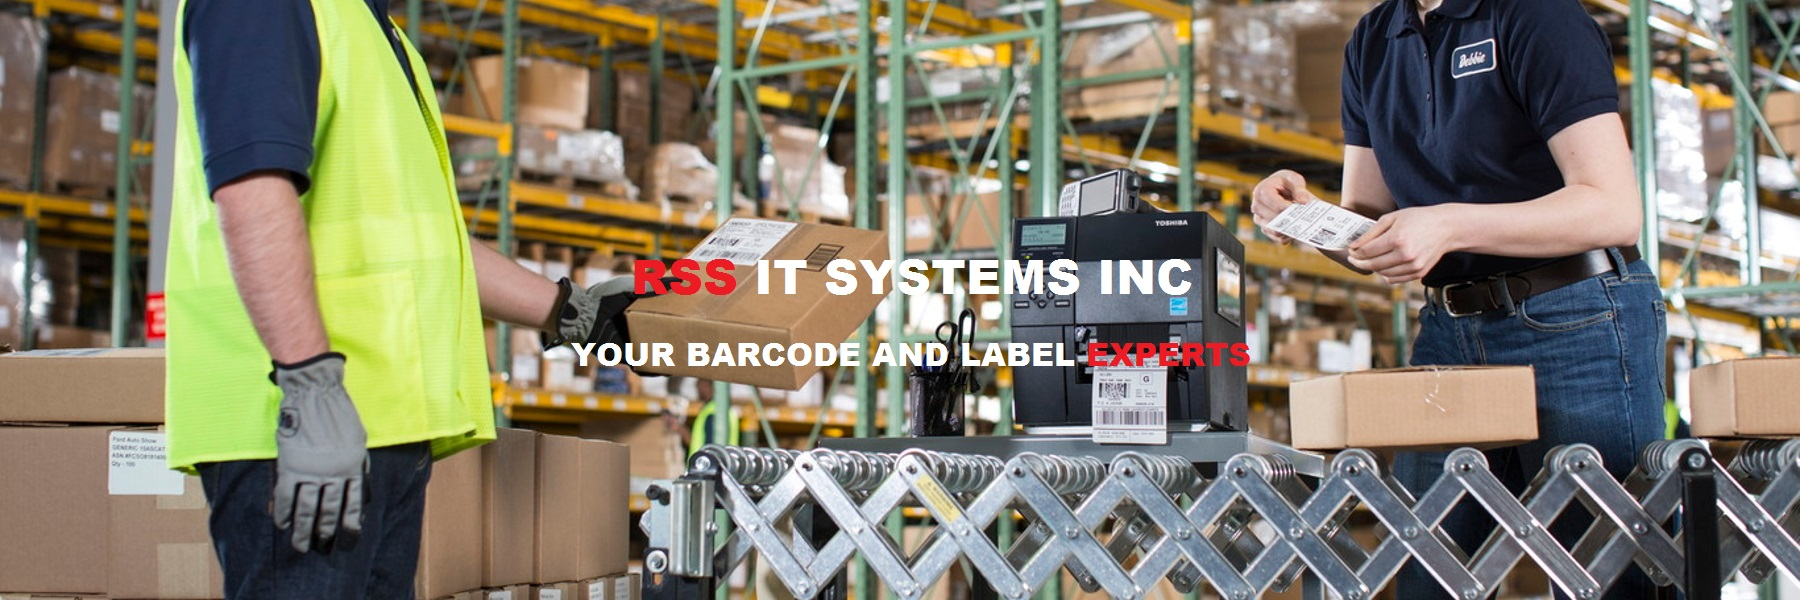 Barcode and Label Experts